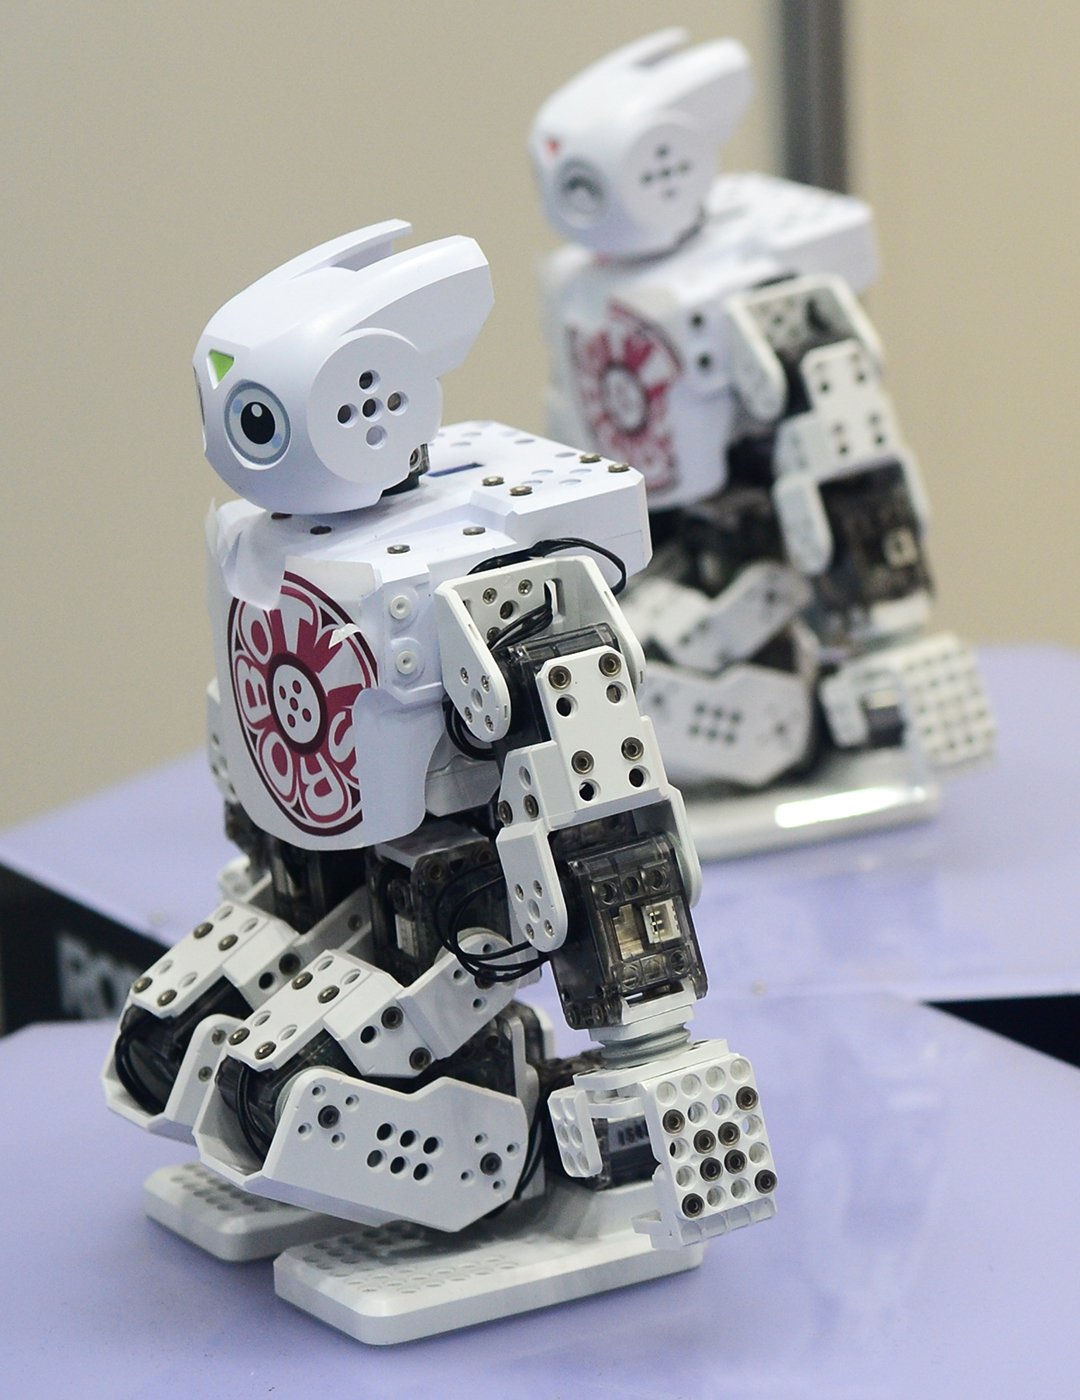 2015-Robot-Show-013 International Robot Exhibition  -  Tokyo, Japan Japan Tokyo  Tokyo Tech Robots Japan Cool